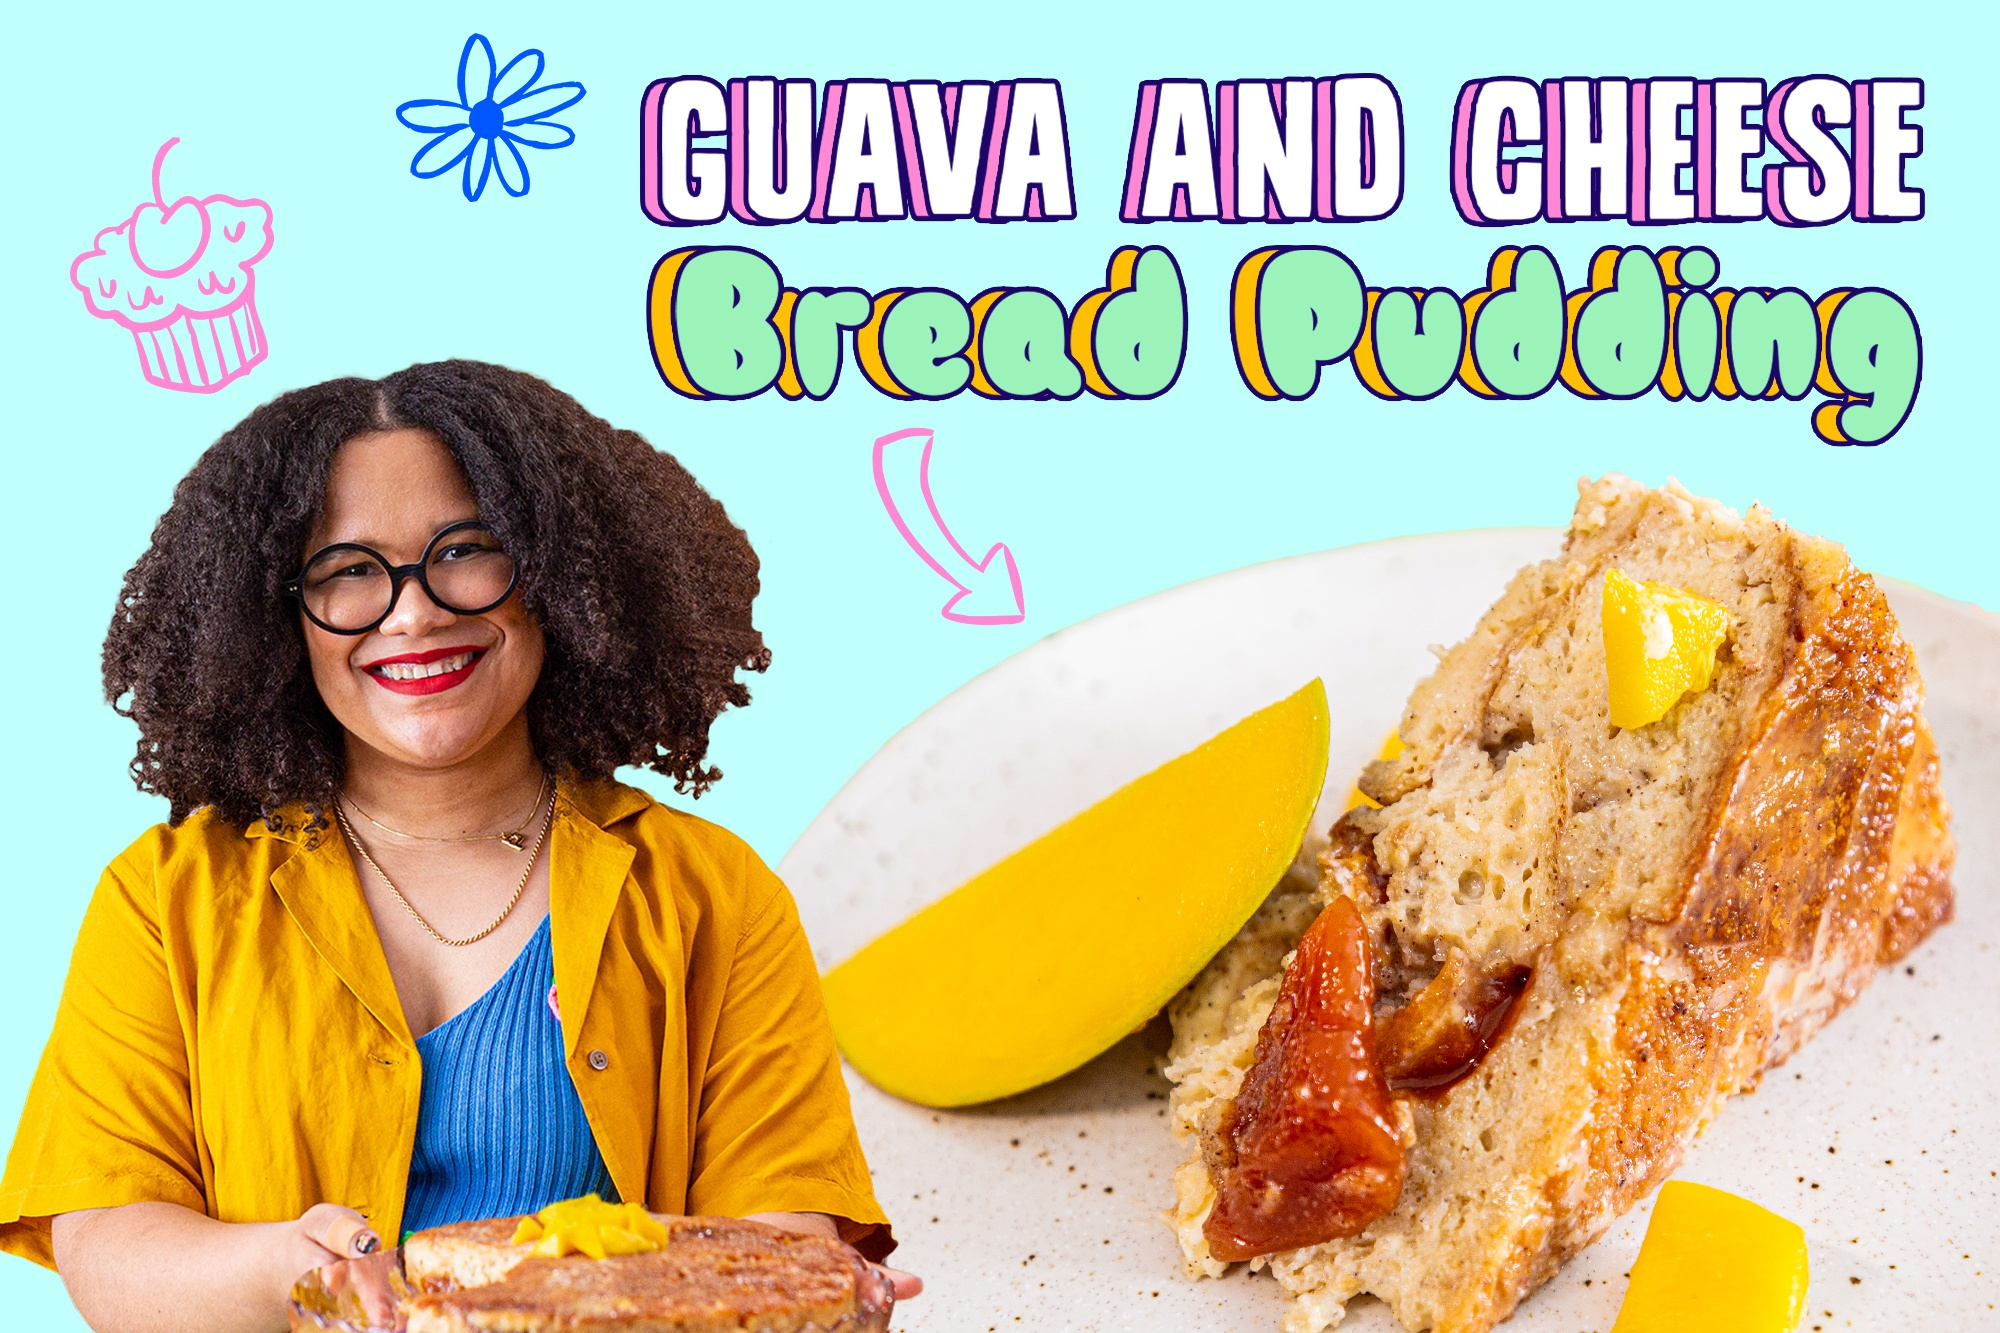 Paola Velez and her guava and cheese bread pudding